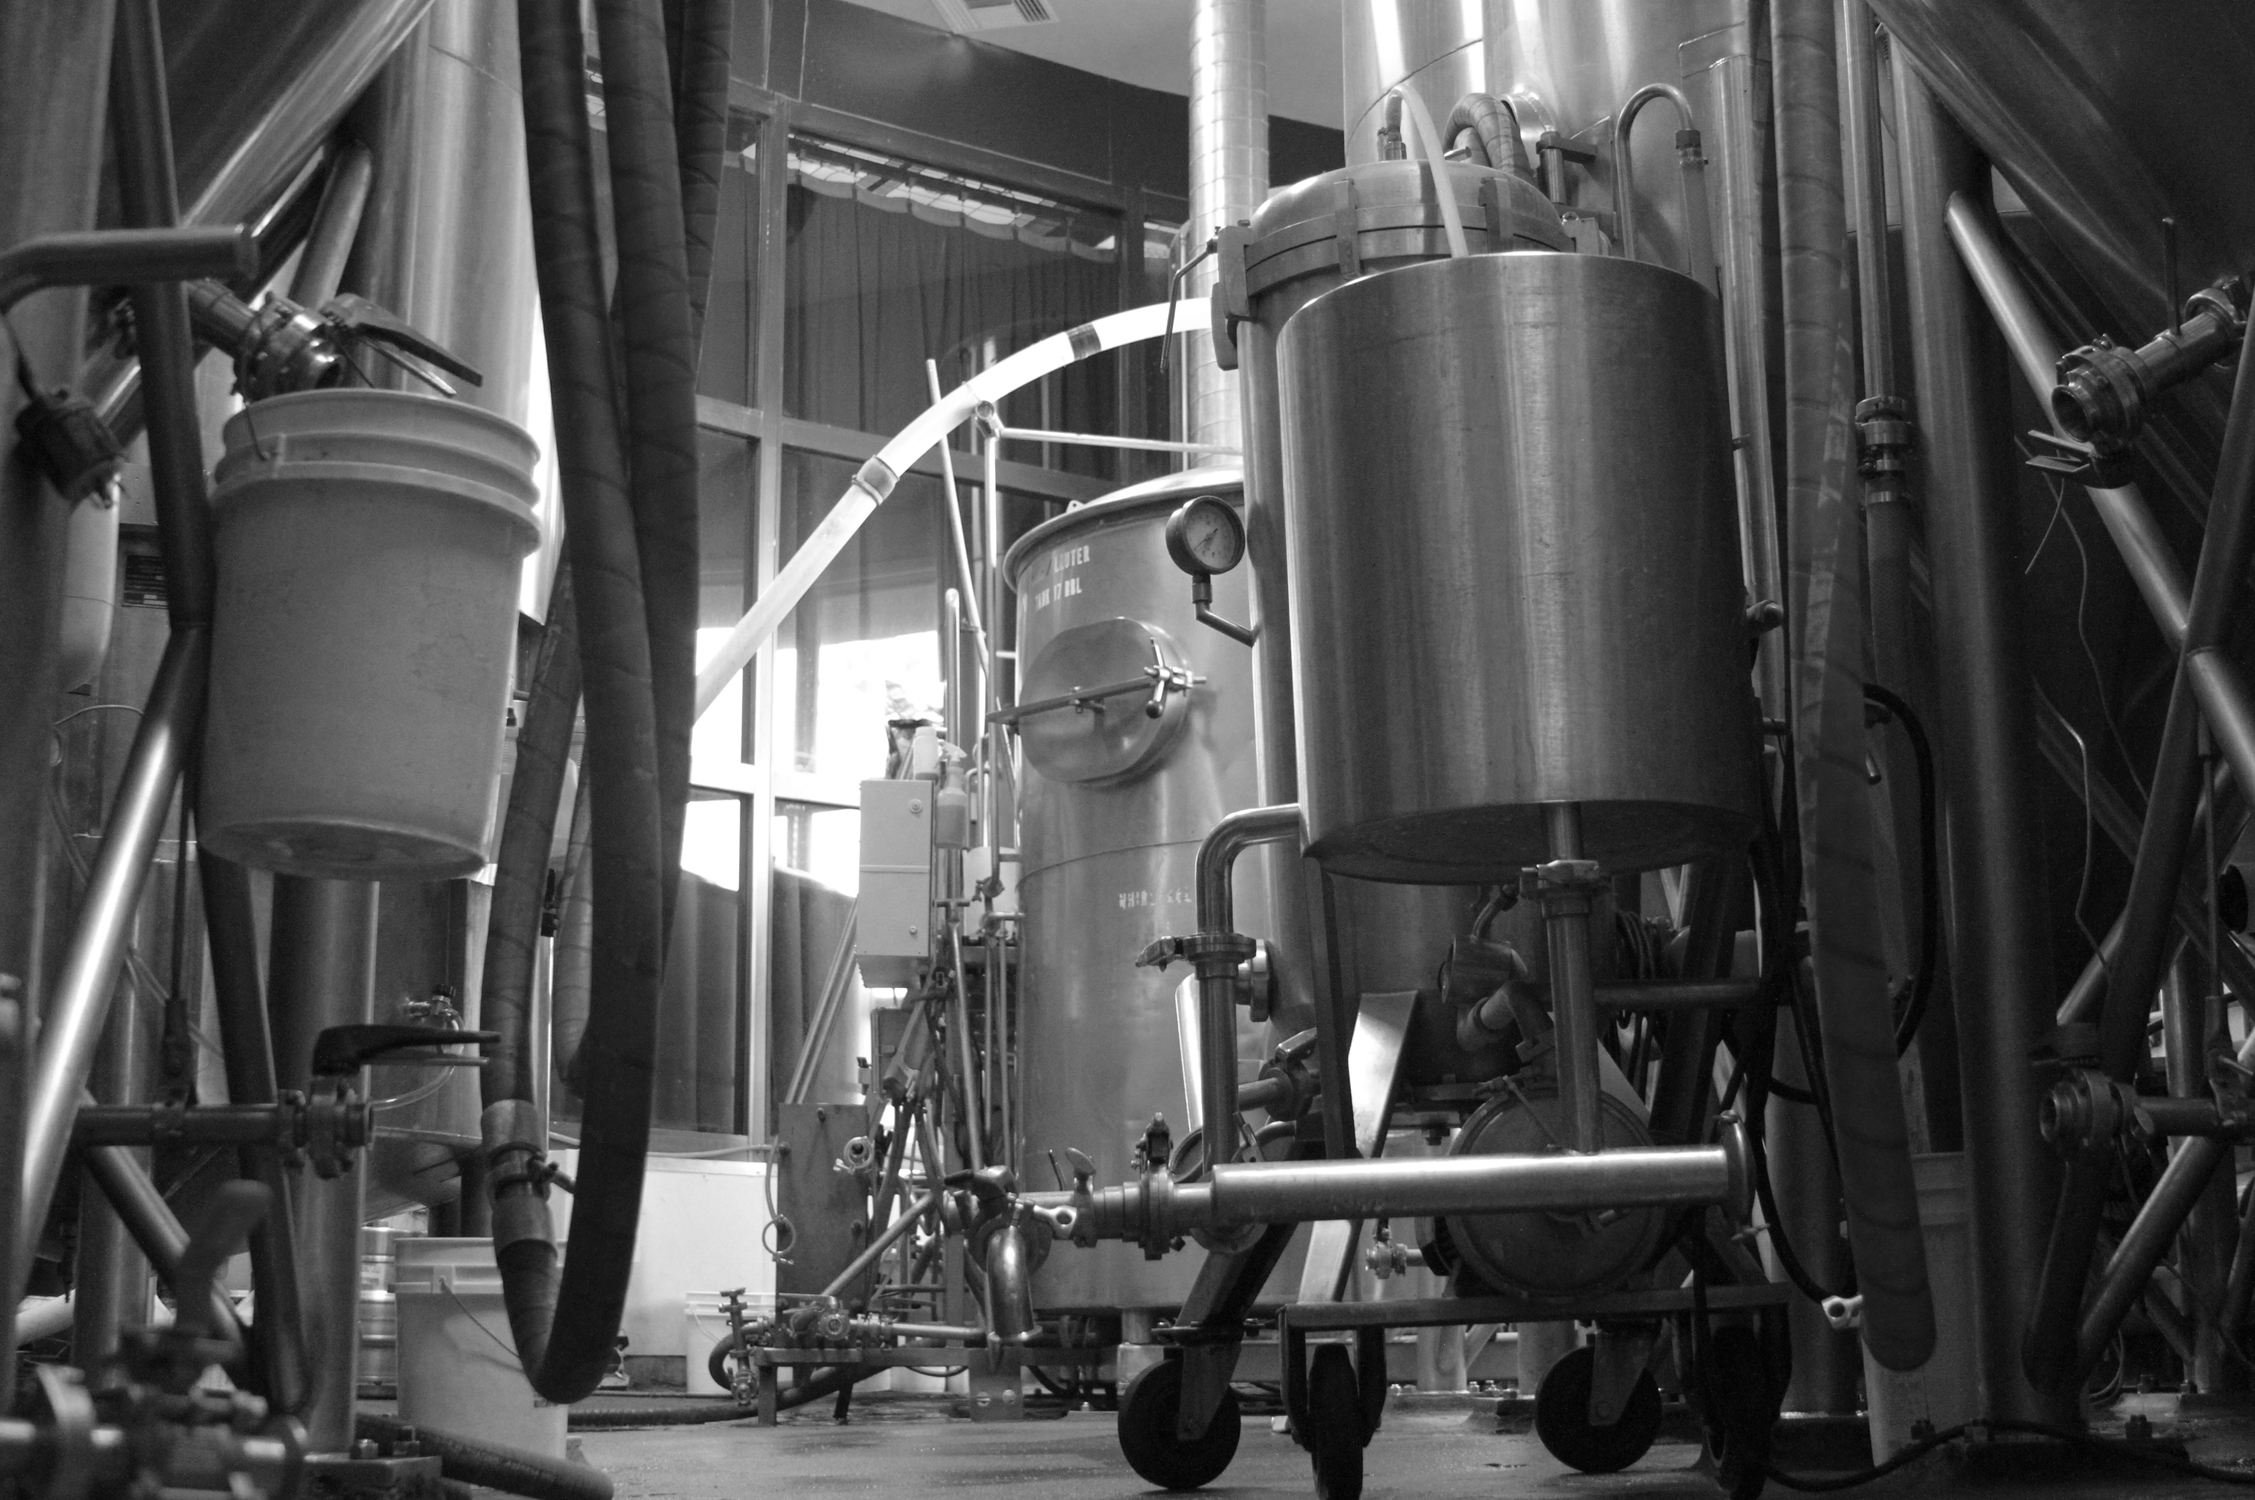 Fermenters and Filter